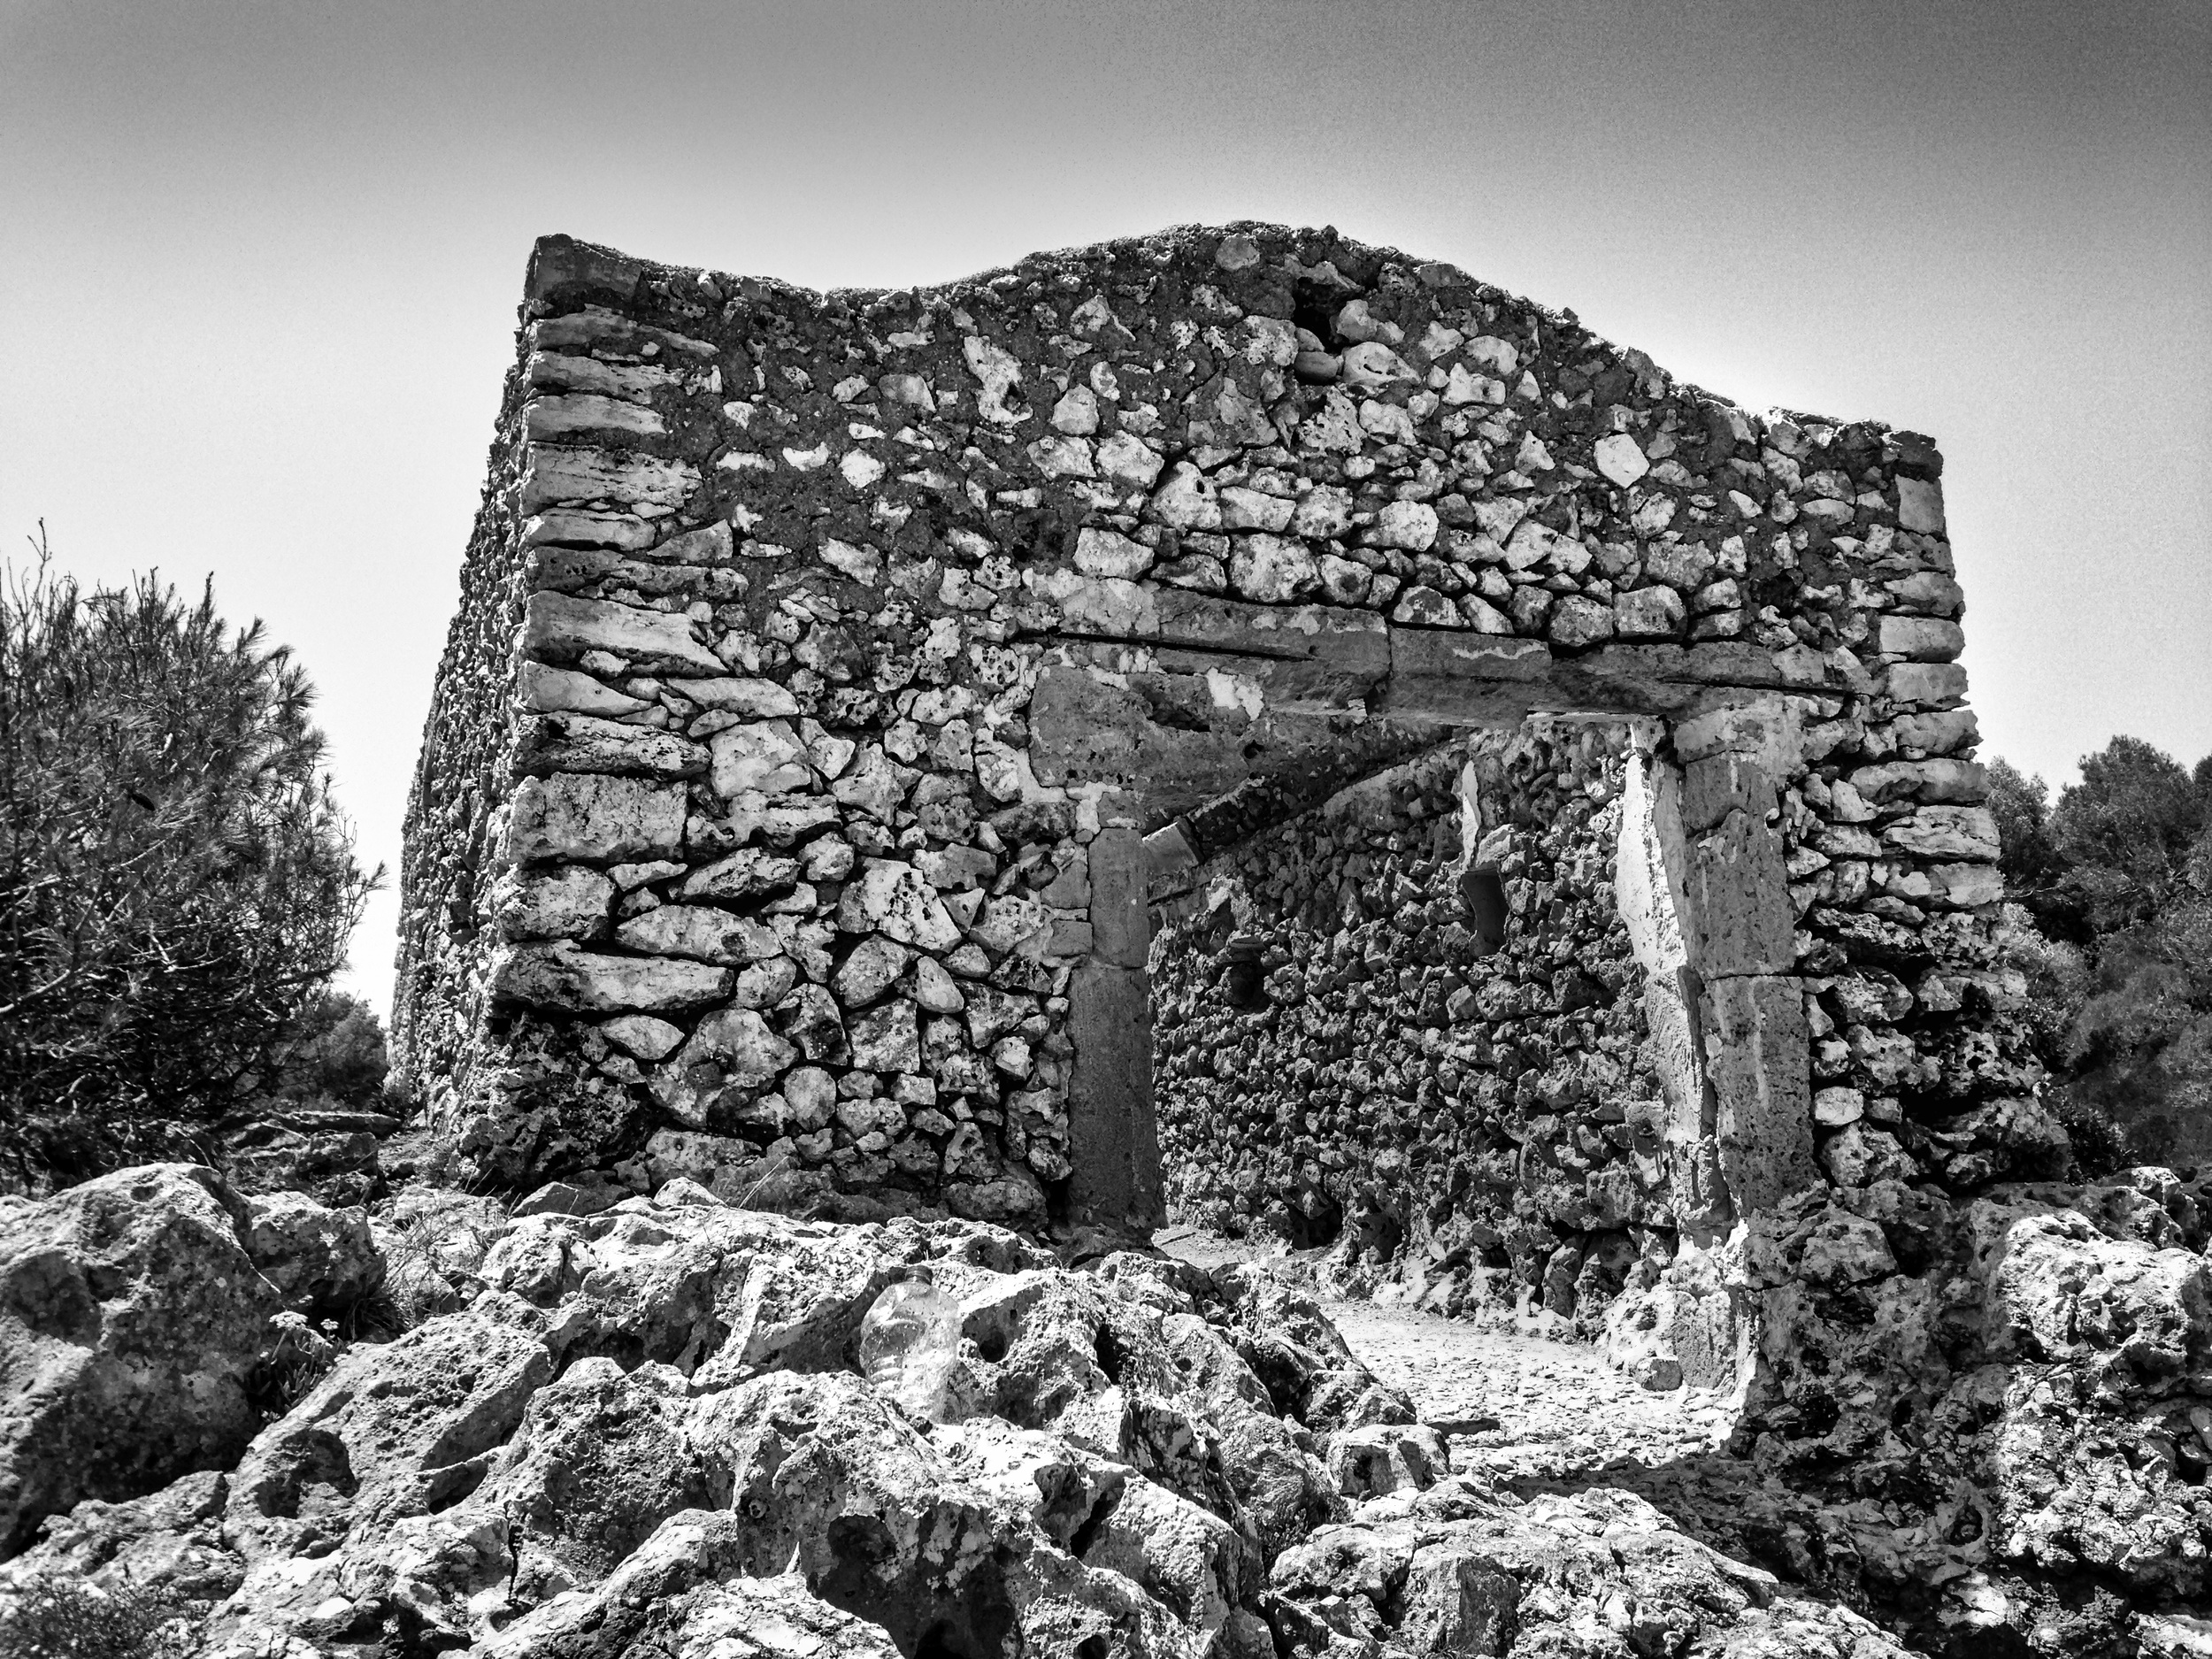 Found this old building when I was having a walk along the coastline last year when on holiday in Majorca